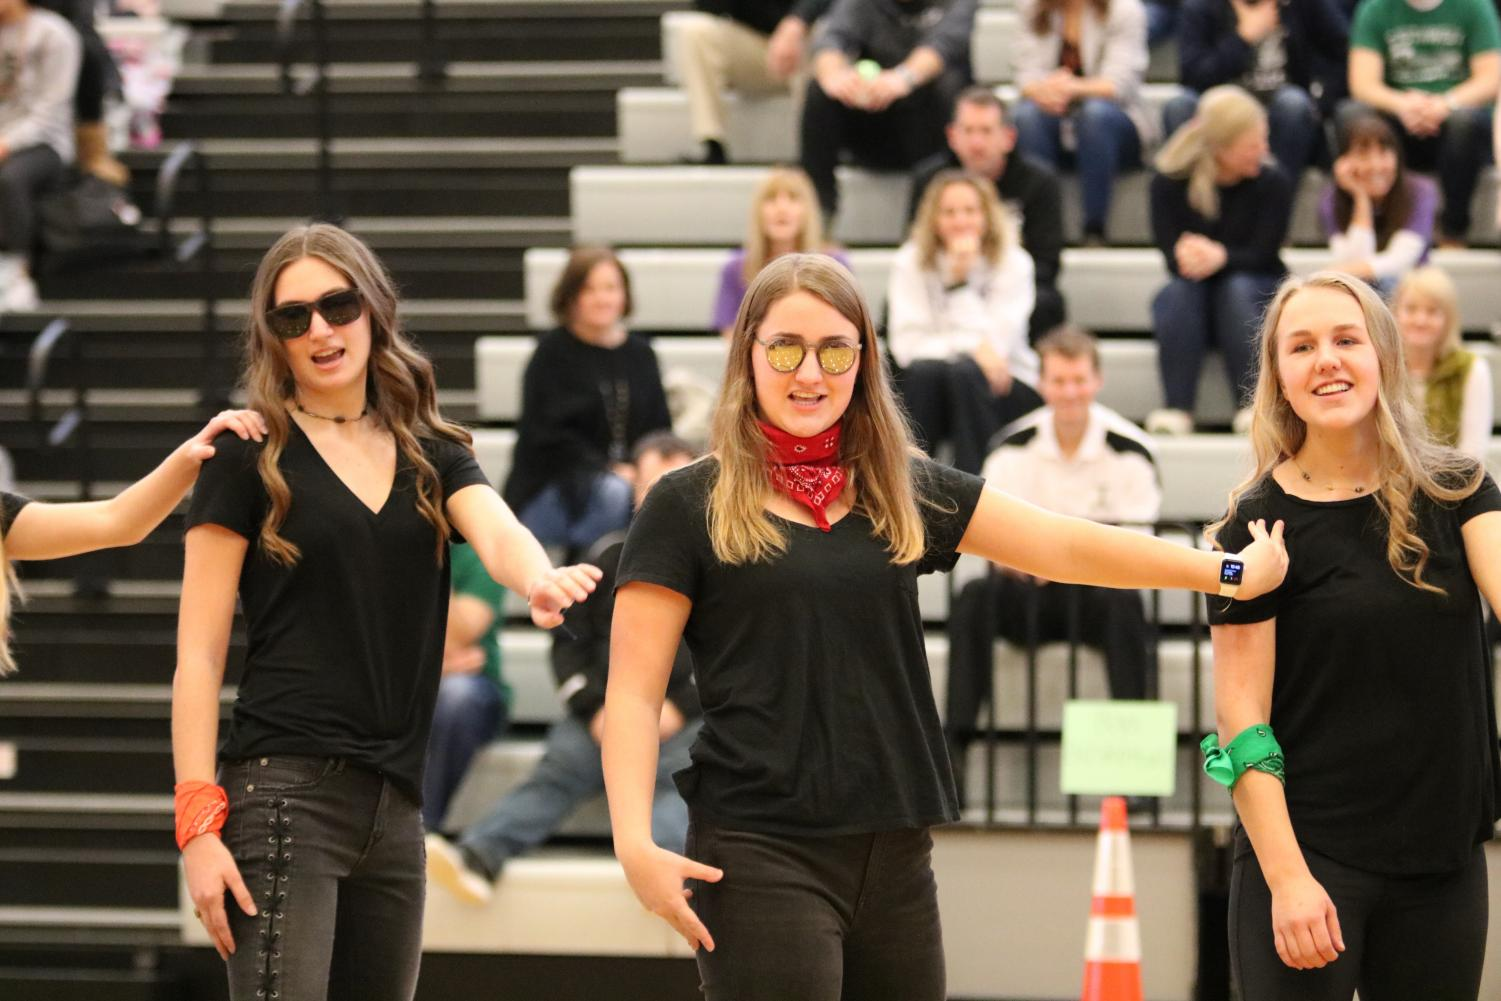 Senior Sadie Putnam and sophomore Emily Hope compete against the other winter sports teams in a dance off / lip-sync battle. They preformed their dance to Formation by Beyonce, taking inspiration from the music video.